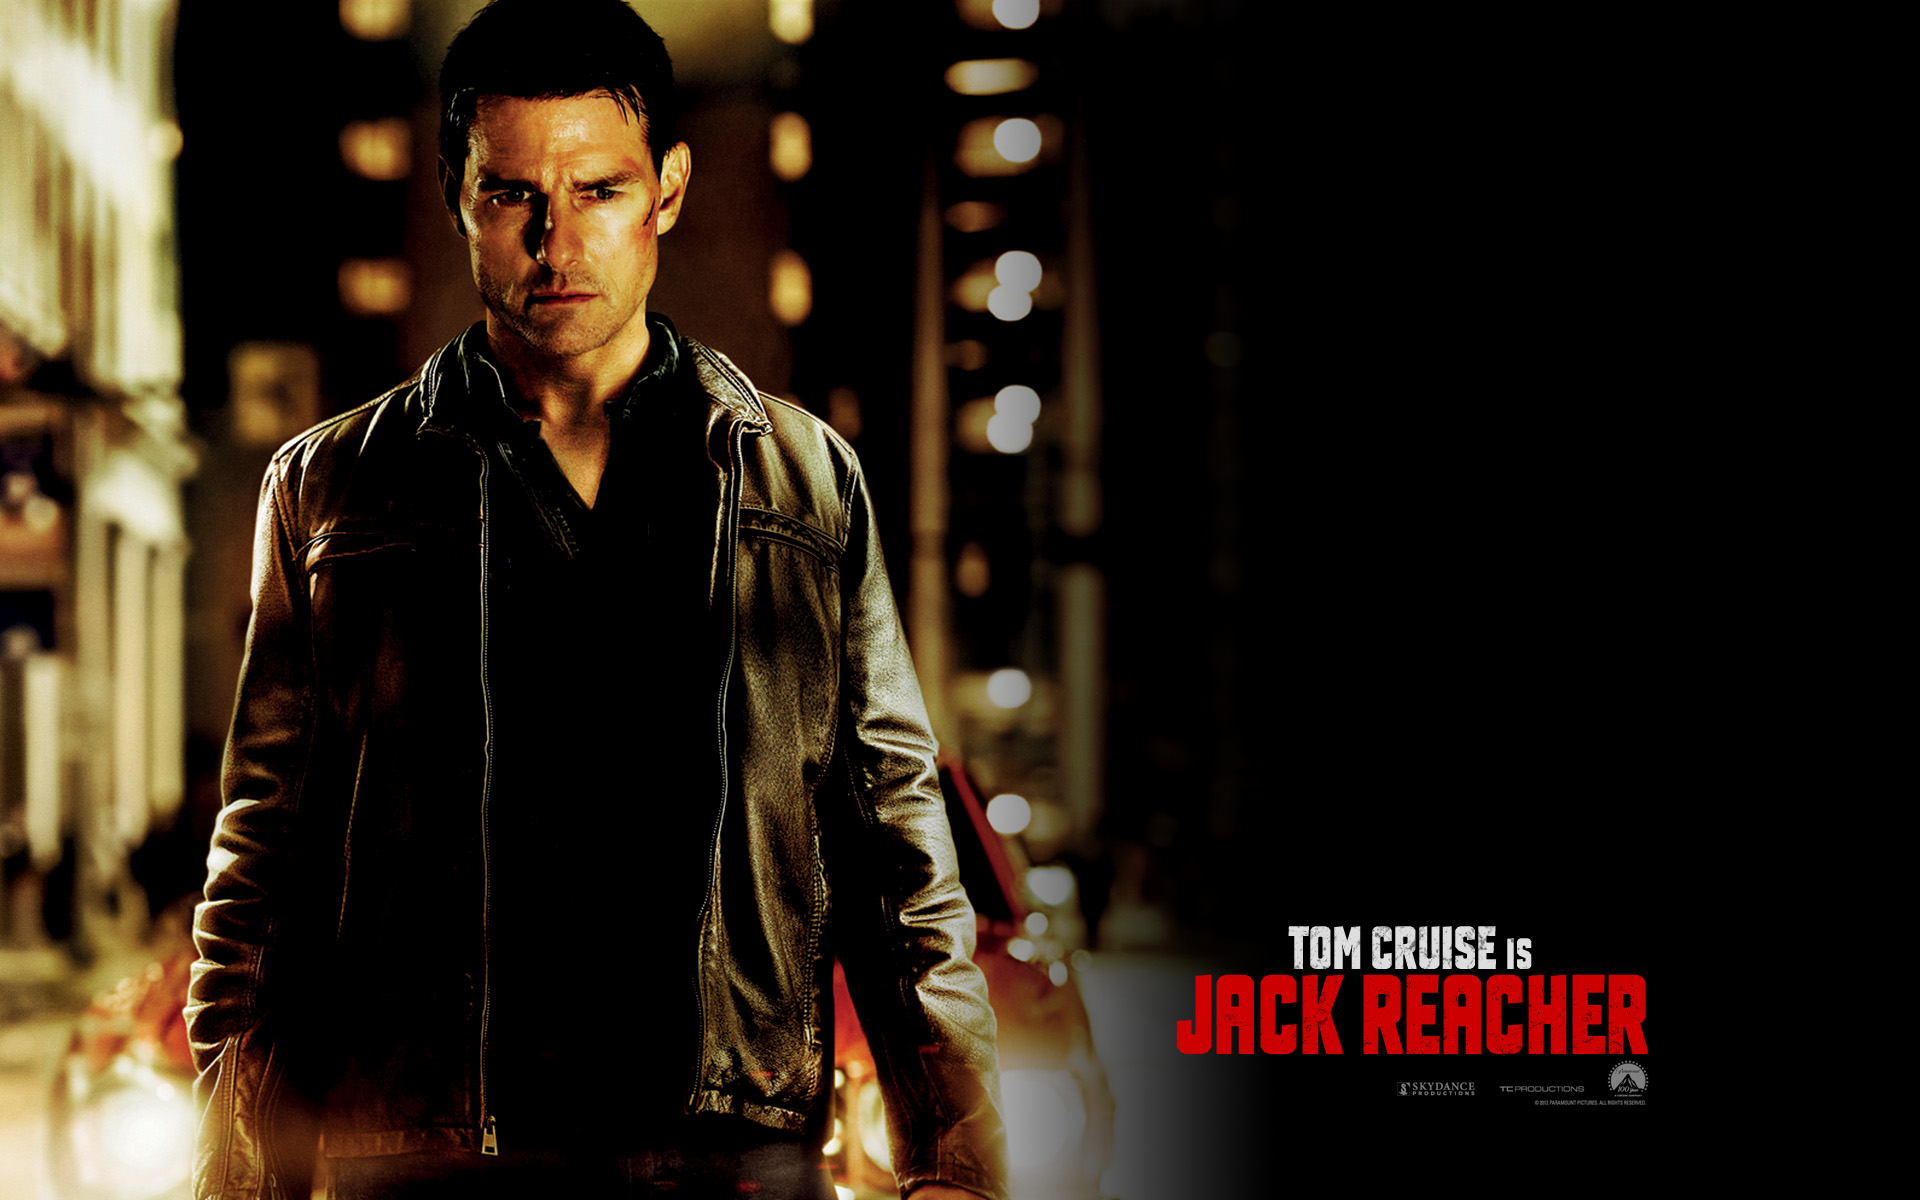 Tom Cruise Quotes 90 Wallpapers: 11 Jack Reacher HD Wallpapers